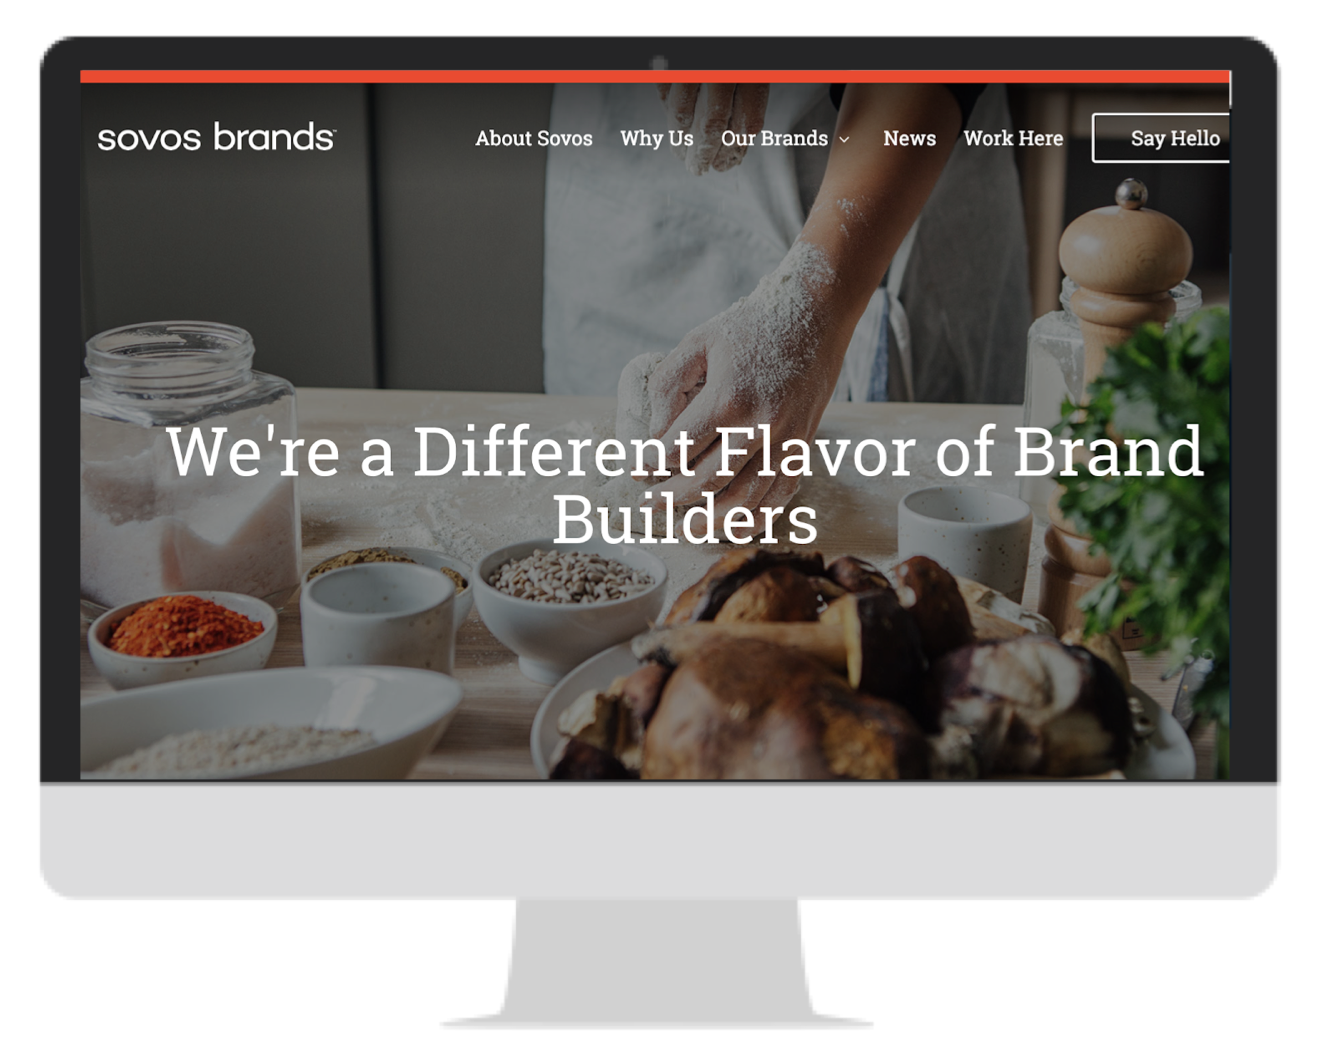 Sovos: A new flavor of corporate website